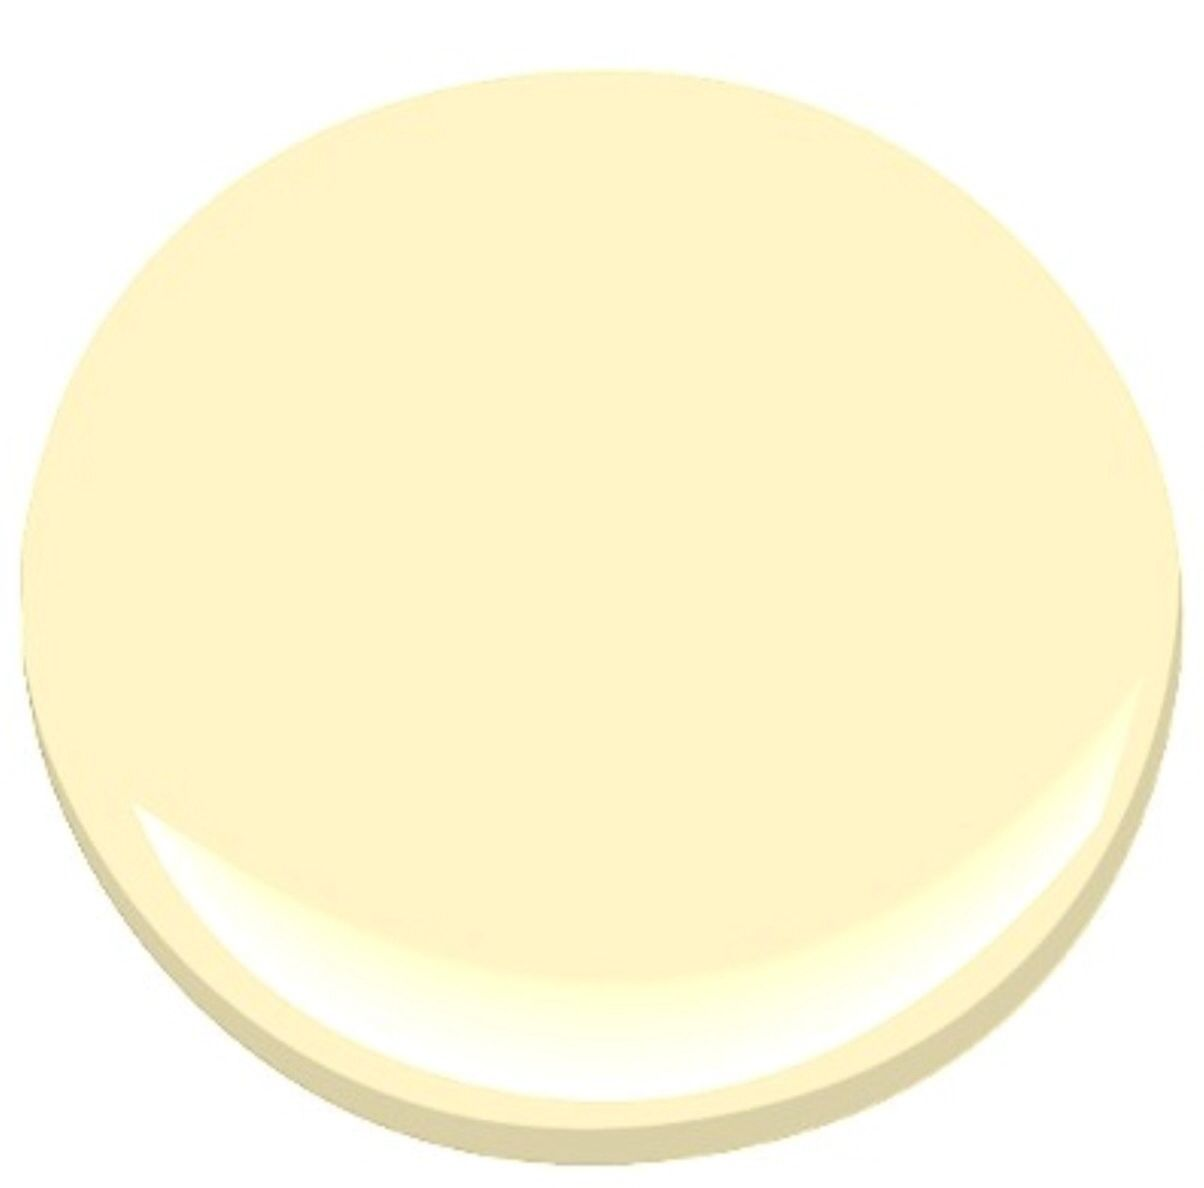 Benjamin Moore Moonlight Yellow - upstairs bathroom | Our house. Our ...